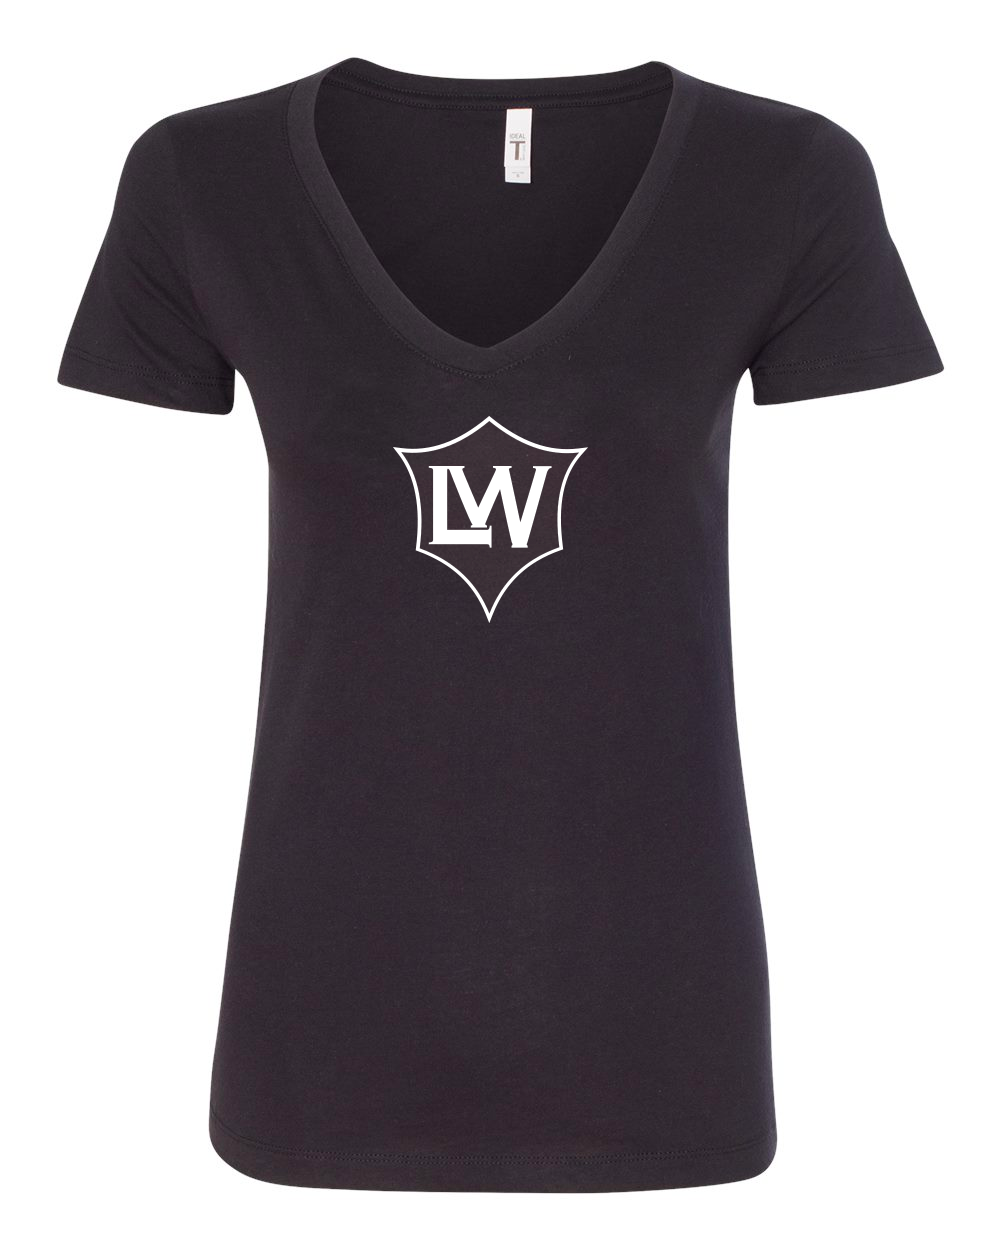 The Life Warrior Ladies V-neck